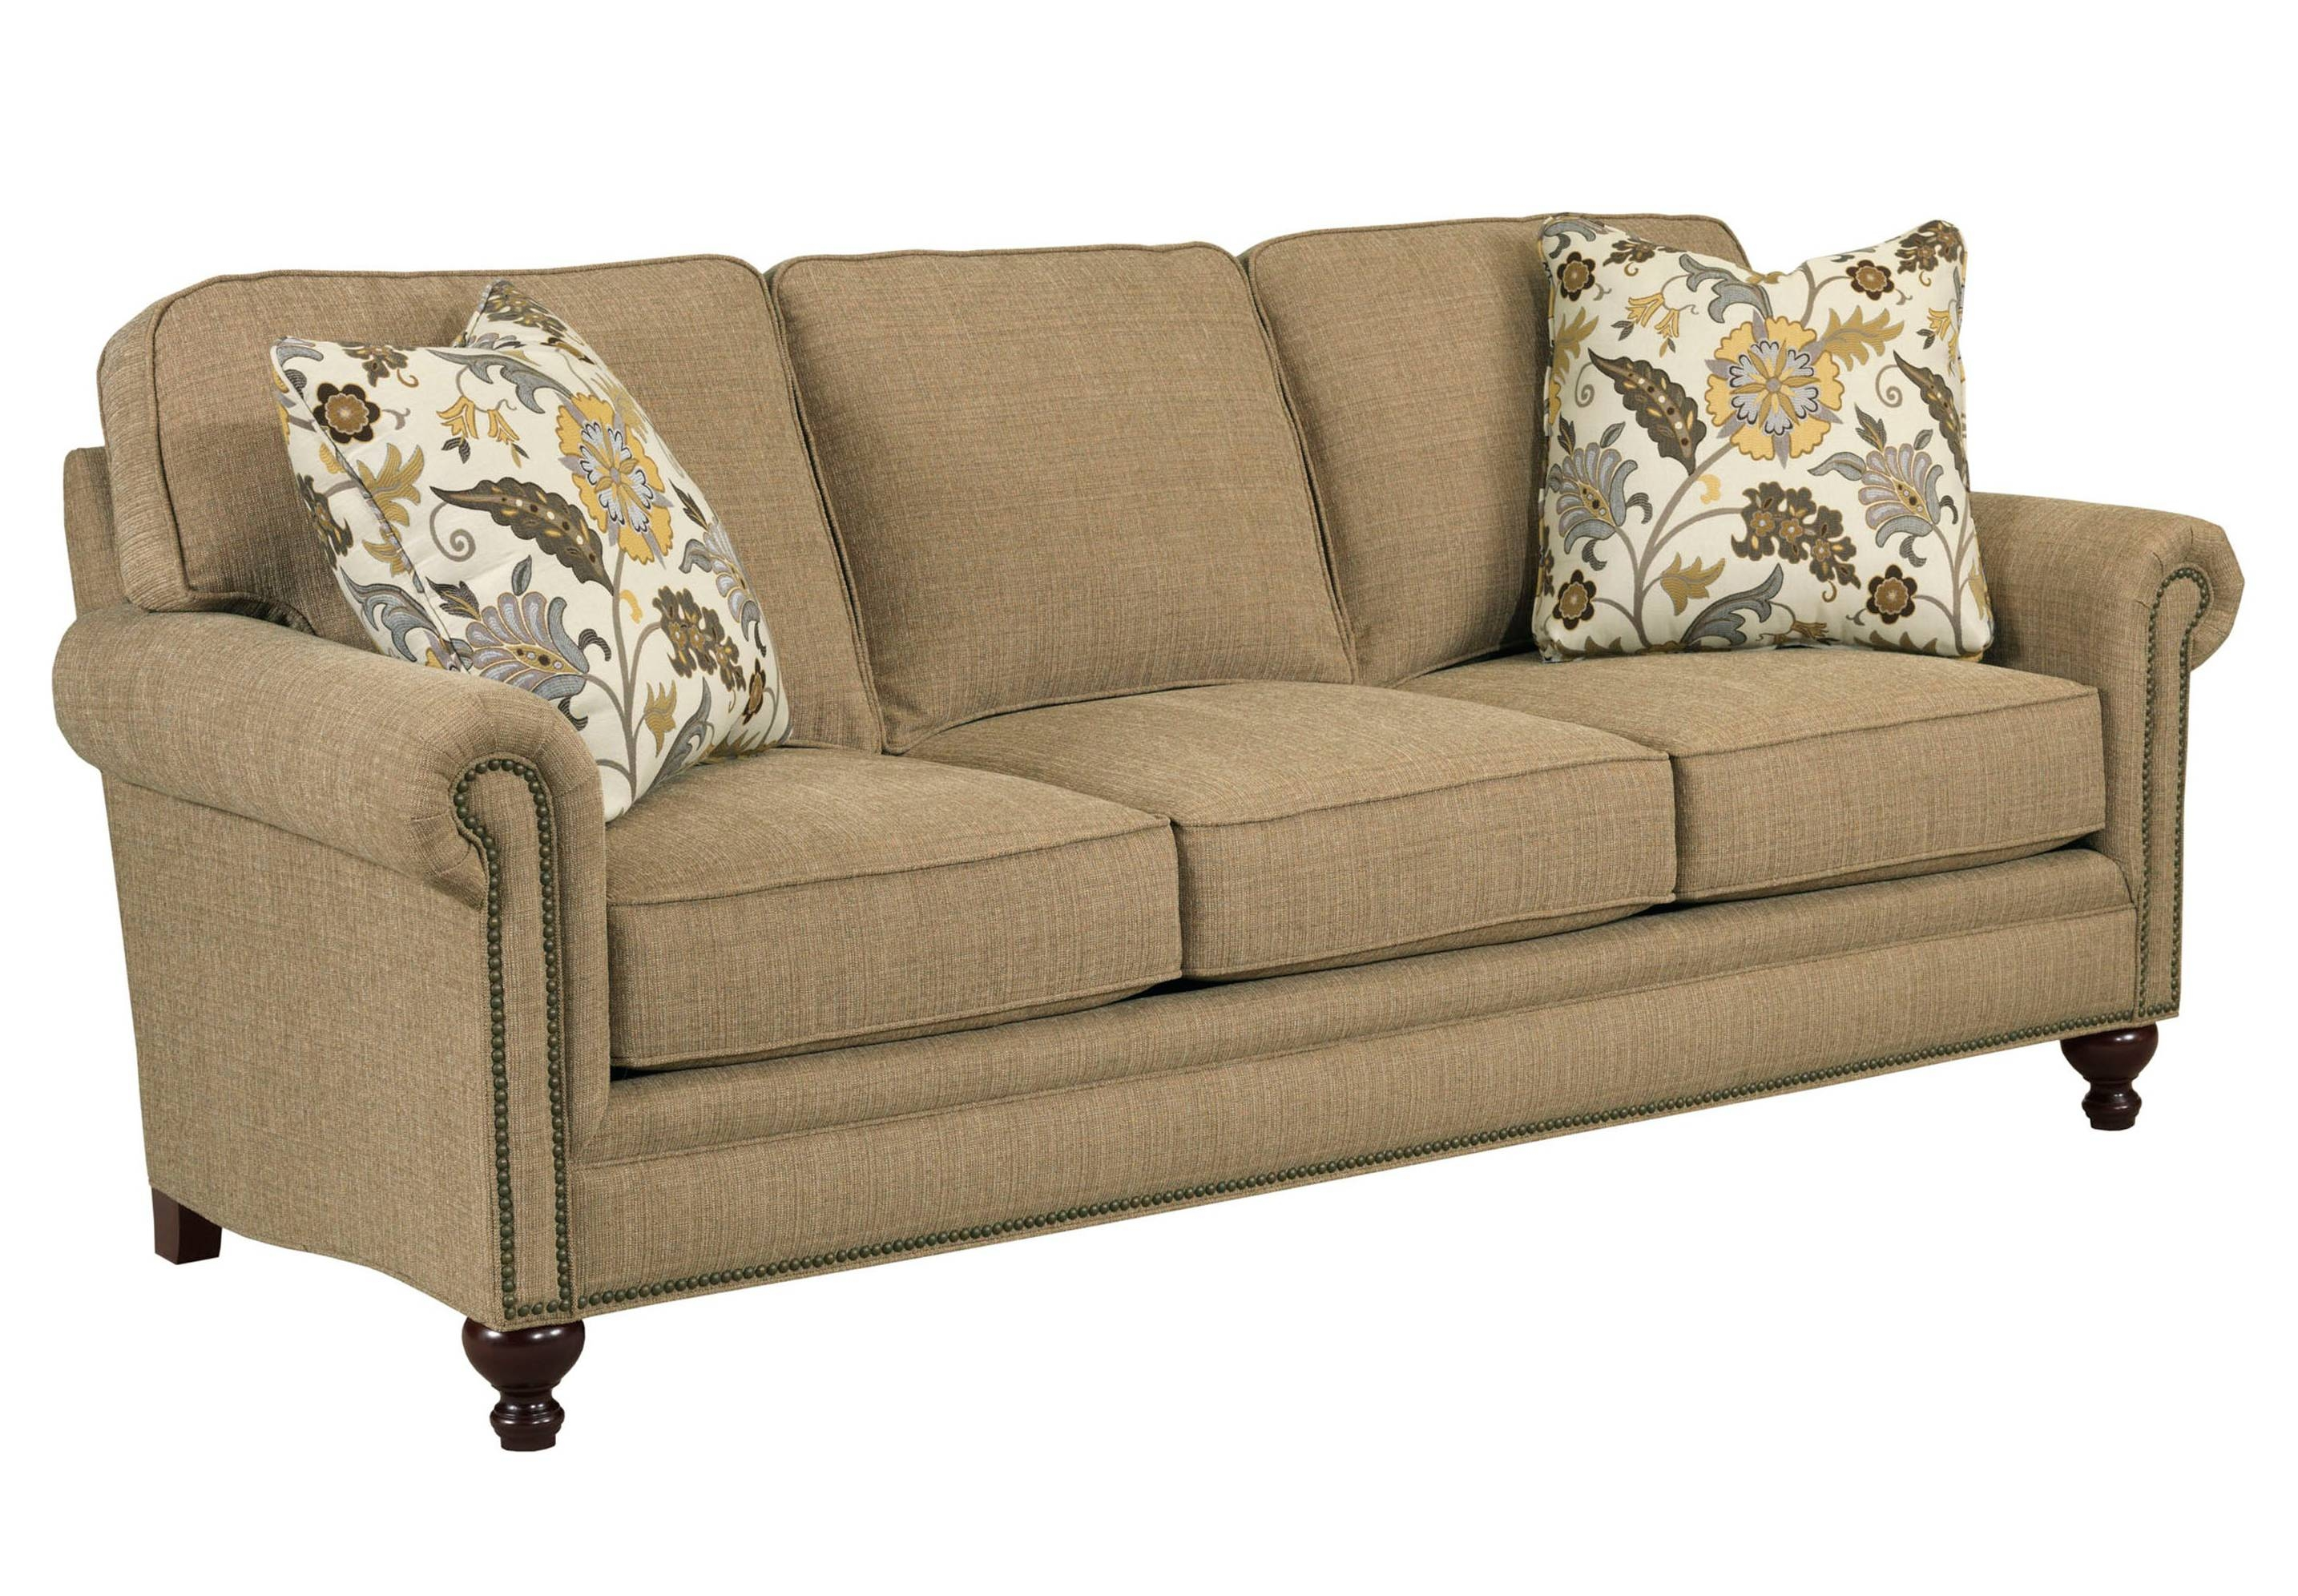 50 Broyhill Sectional Sofa, Broyhill Furniture Audrey Sofa 37623 Inside Broyhill Sectional Sofa (Photo 17 of 30)